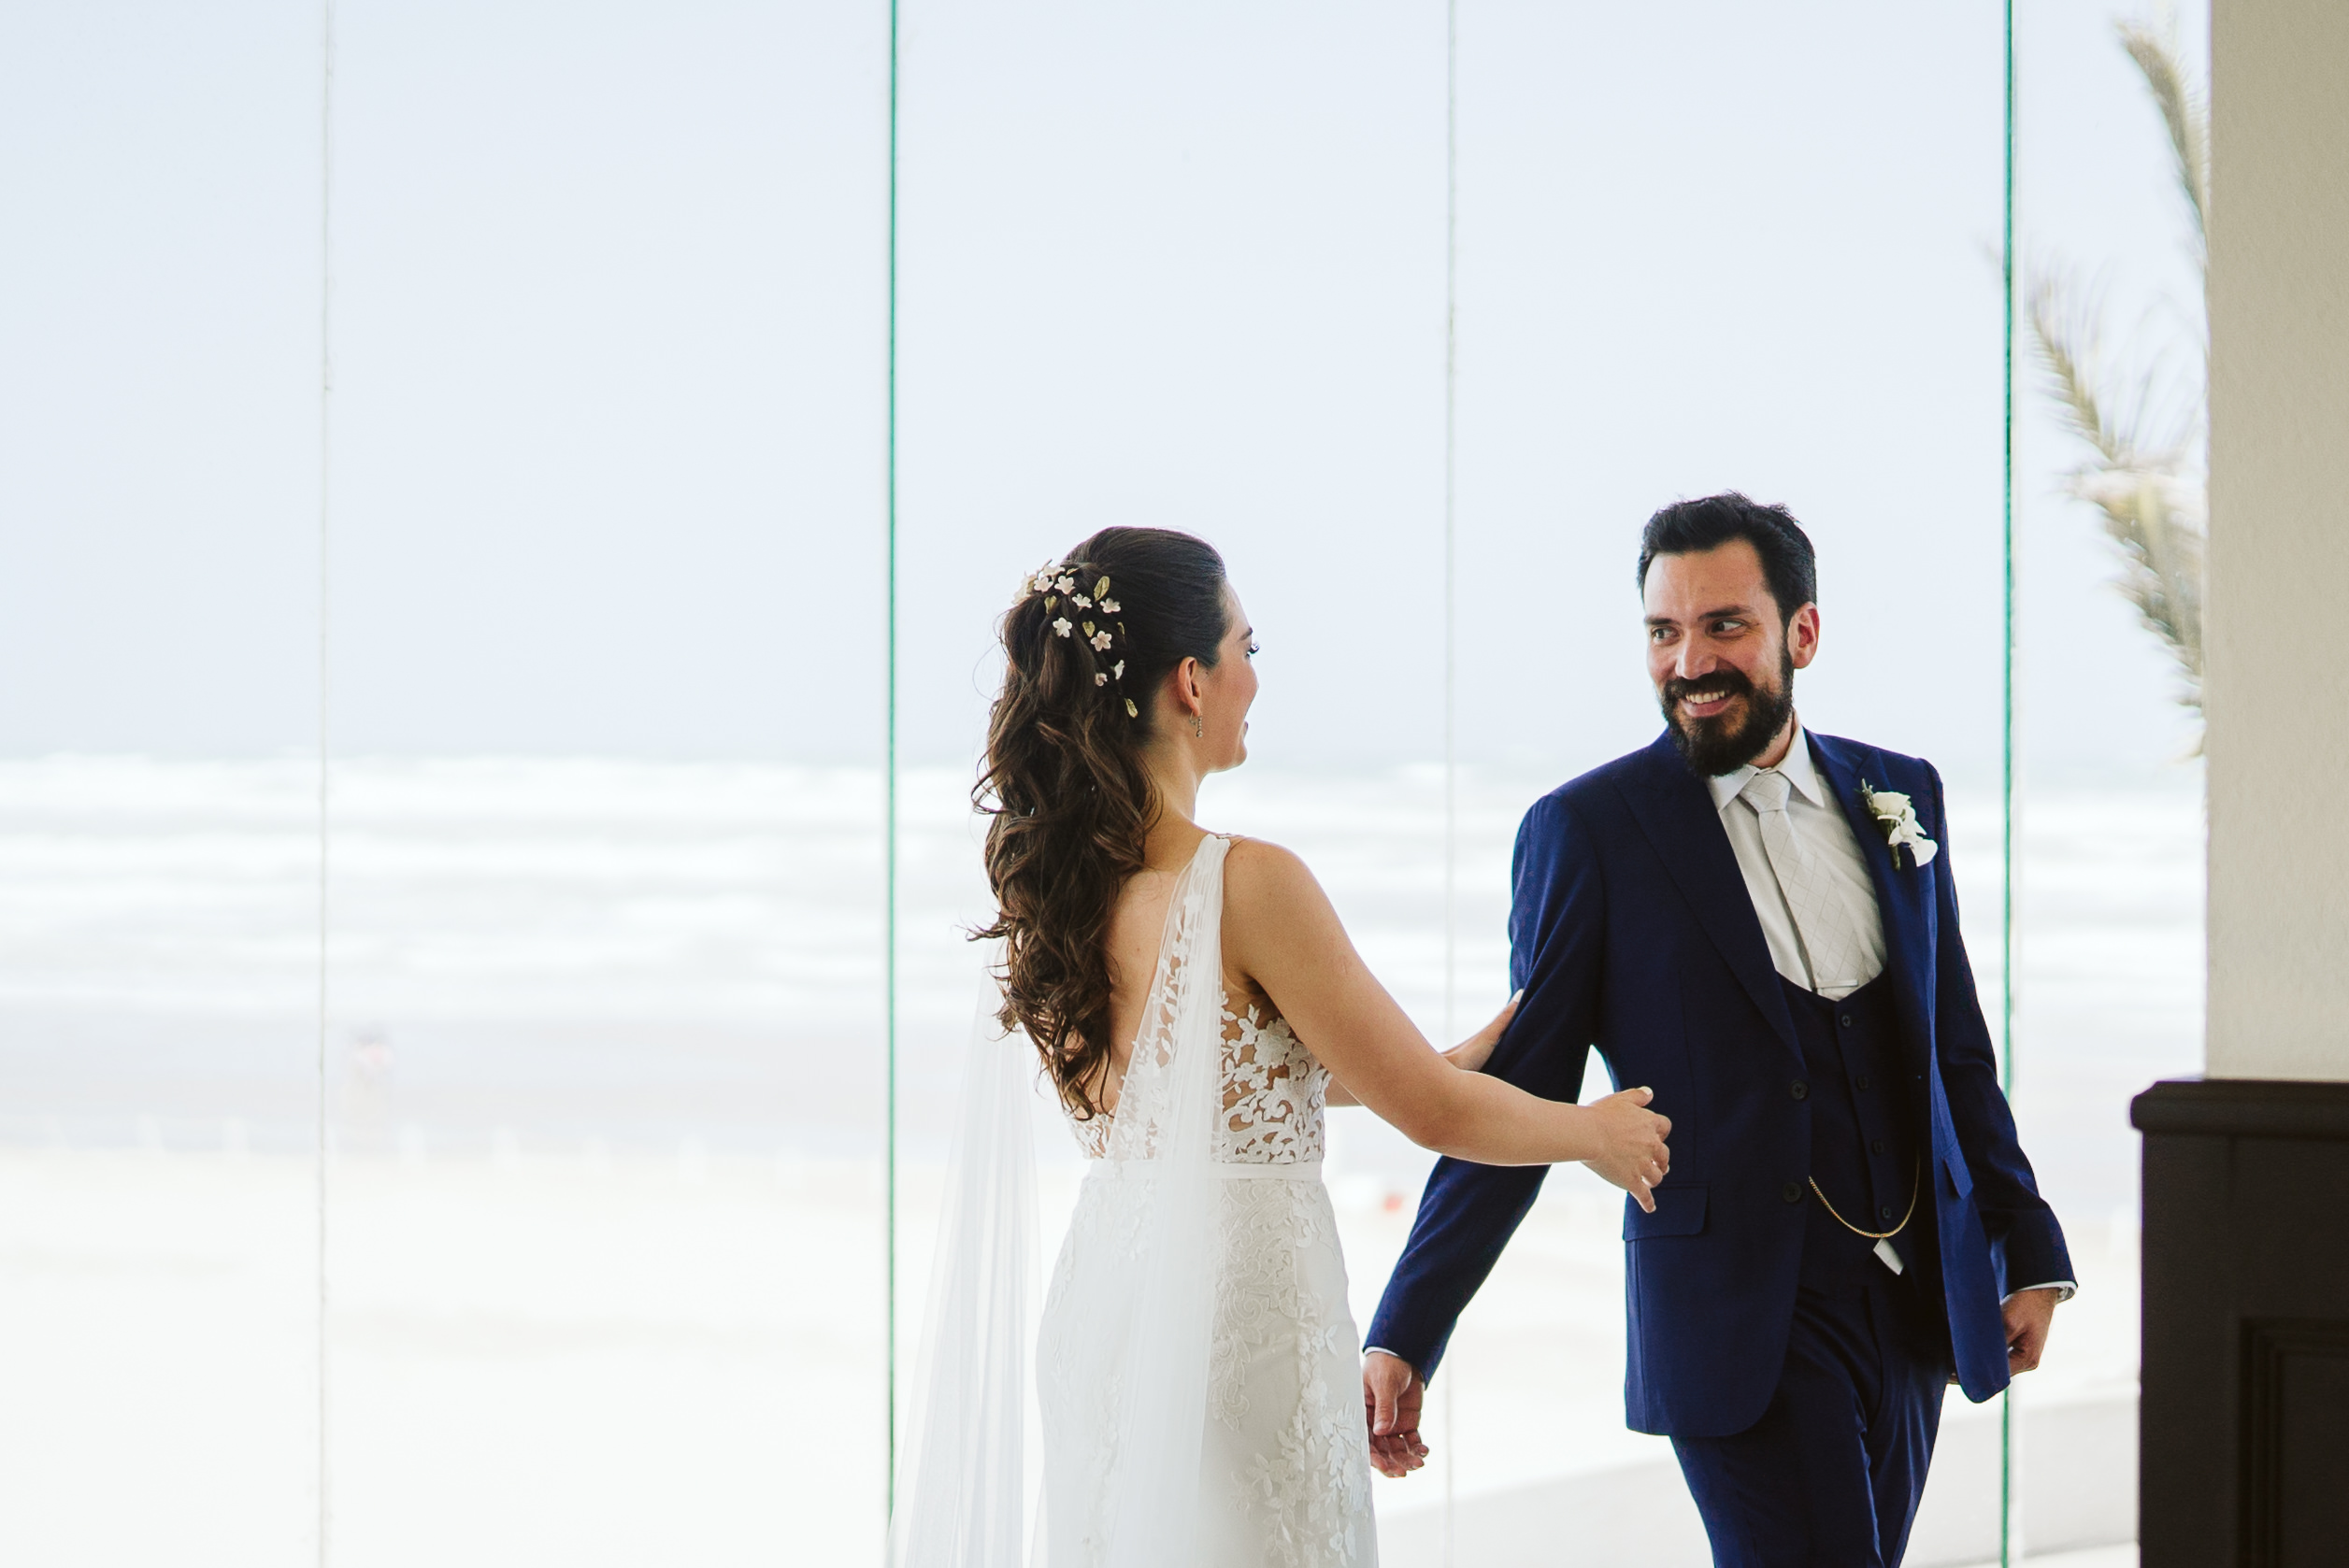 JazSergio-Mexico-Wedding-Photographer-19